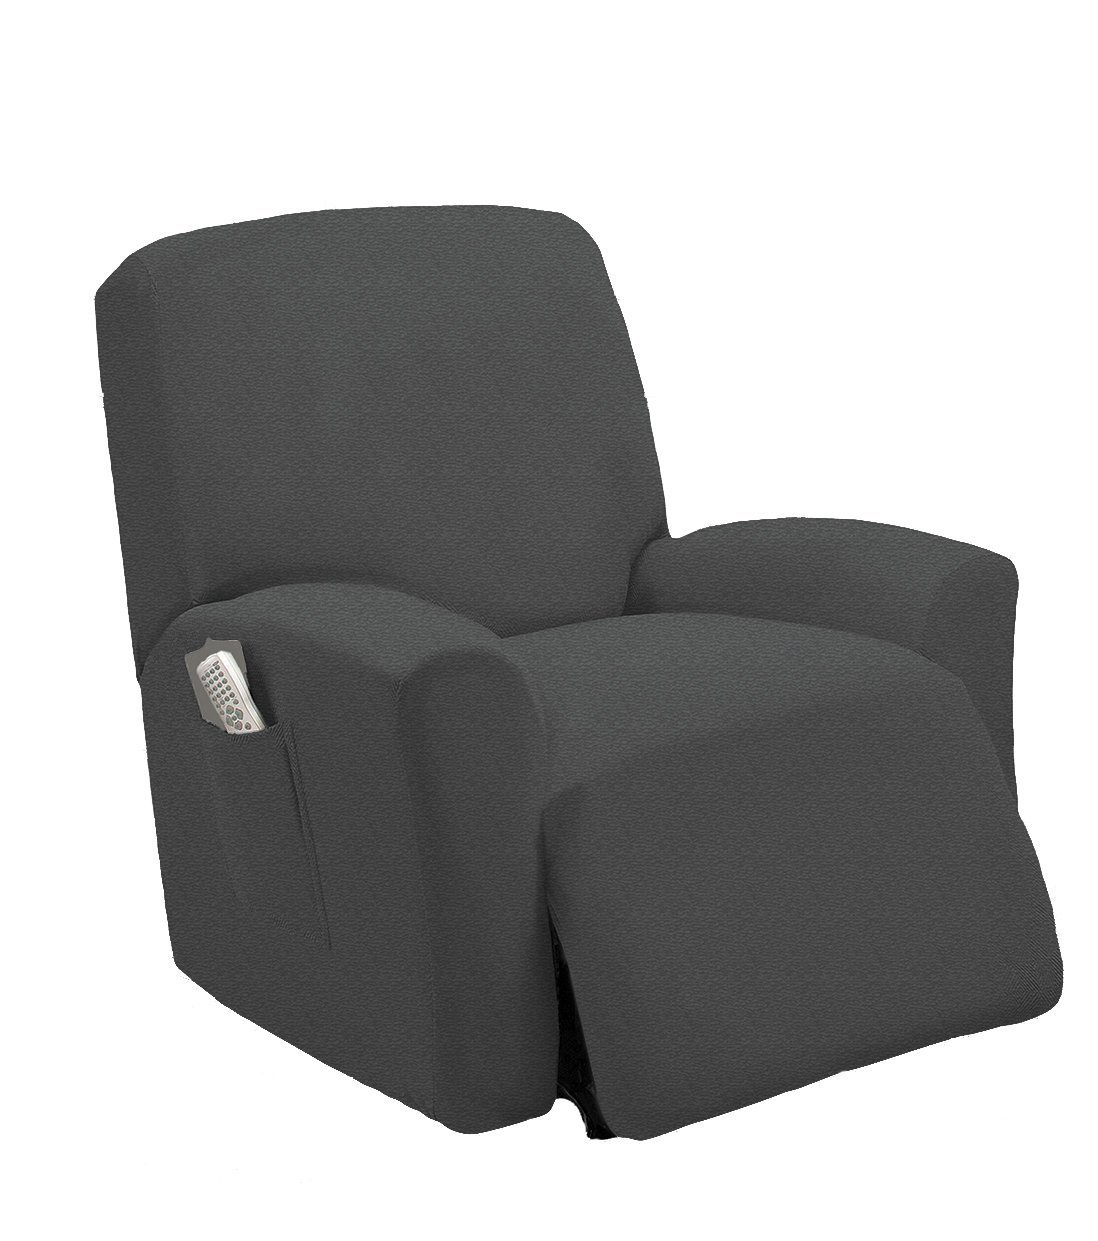 Elegant Home One piece Stretch Recliner Chair Cover Furniture Slipcovers with Remote Pocket Fit most Recliner Chairs (Gray)